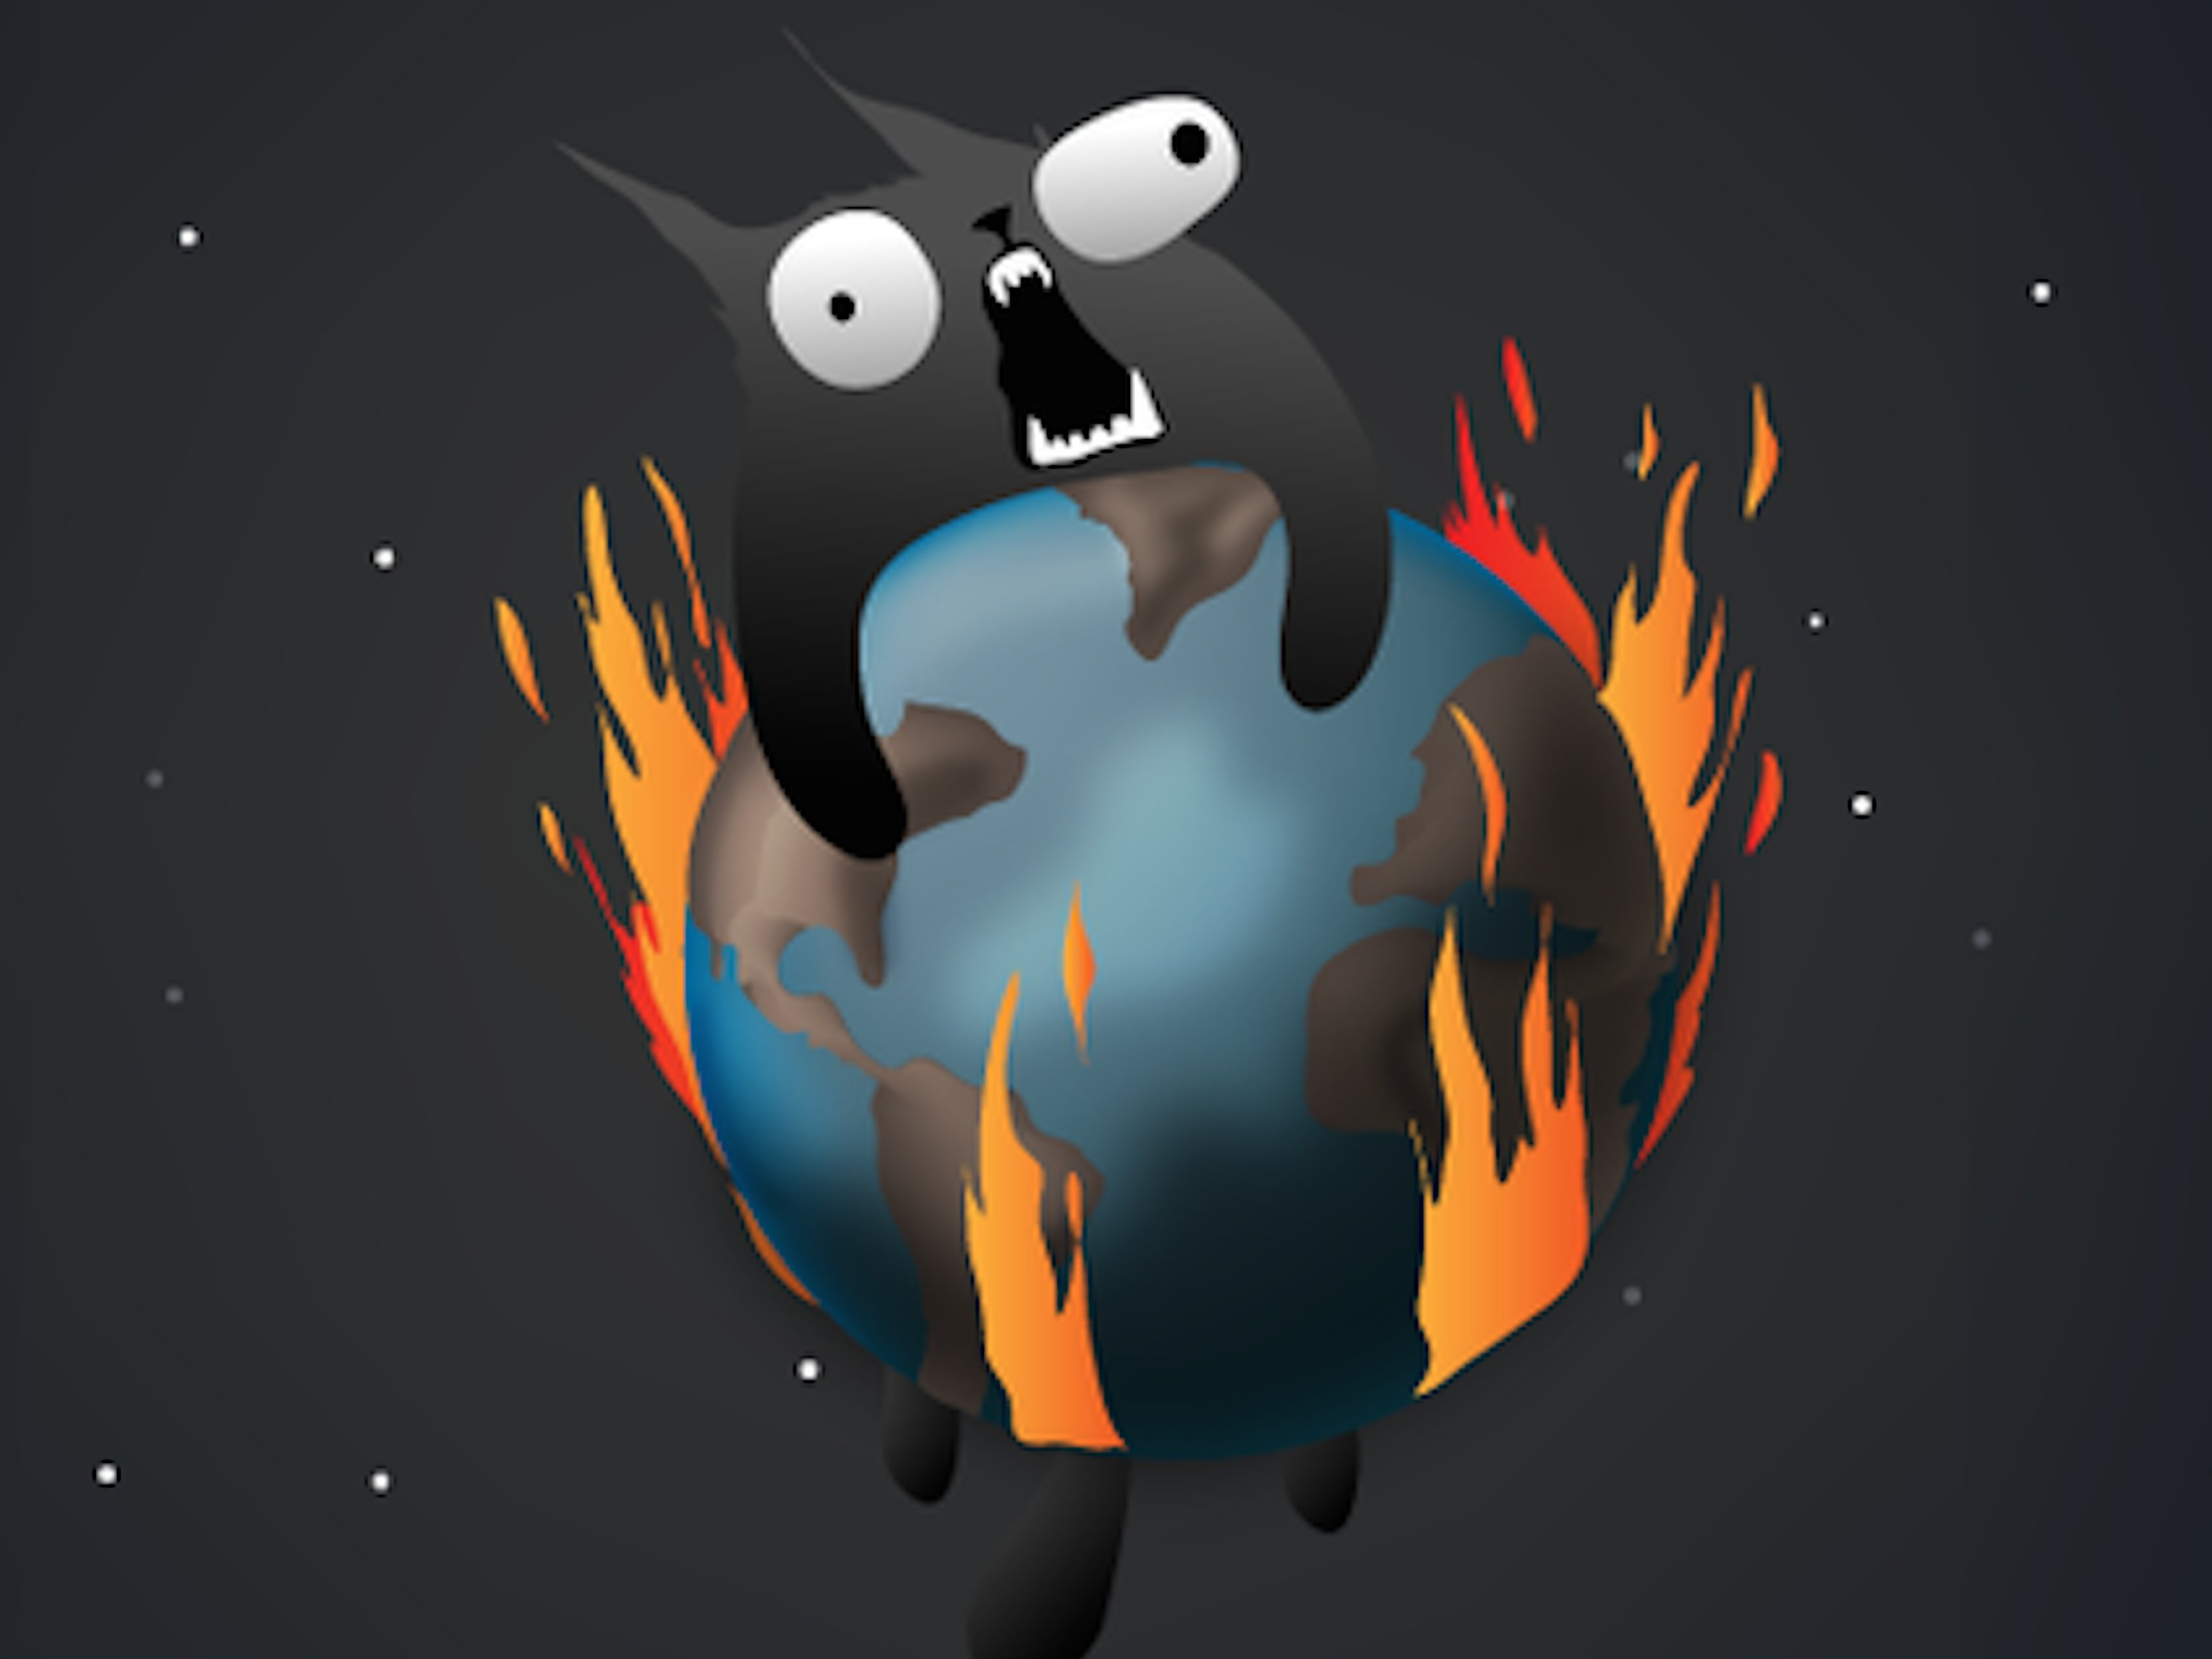 Kickstarter project Exploding Kittens brings furbulence to the App Store tomorrow